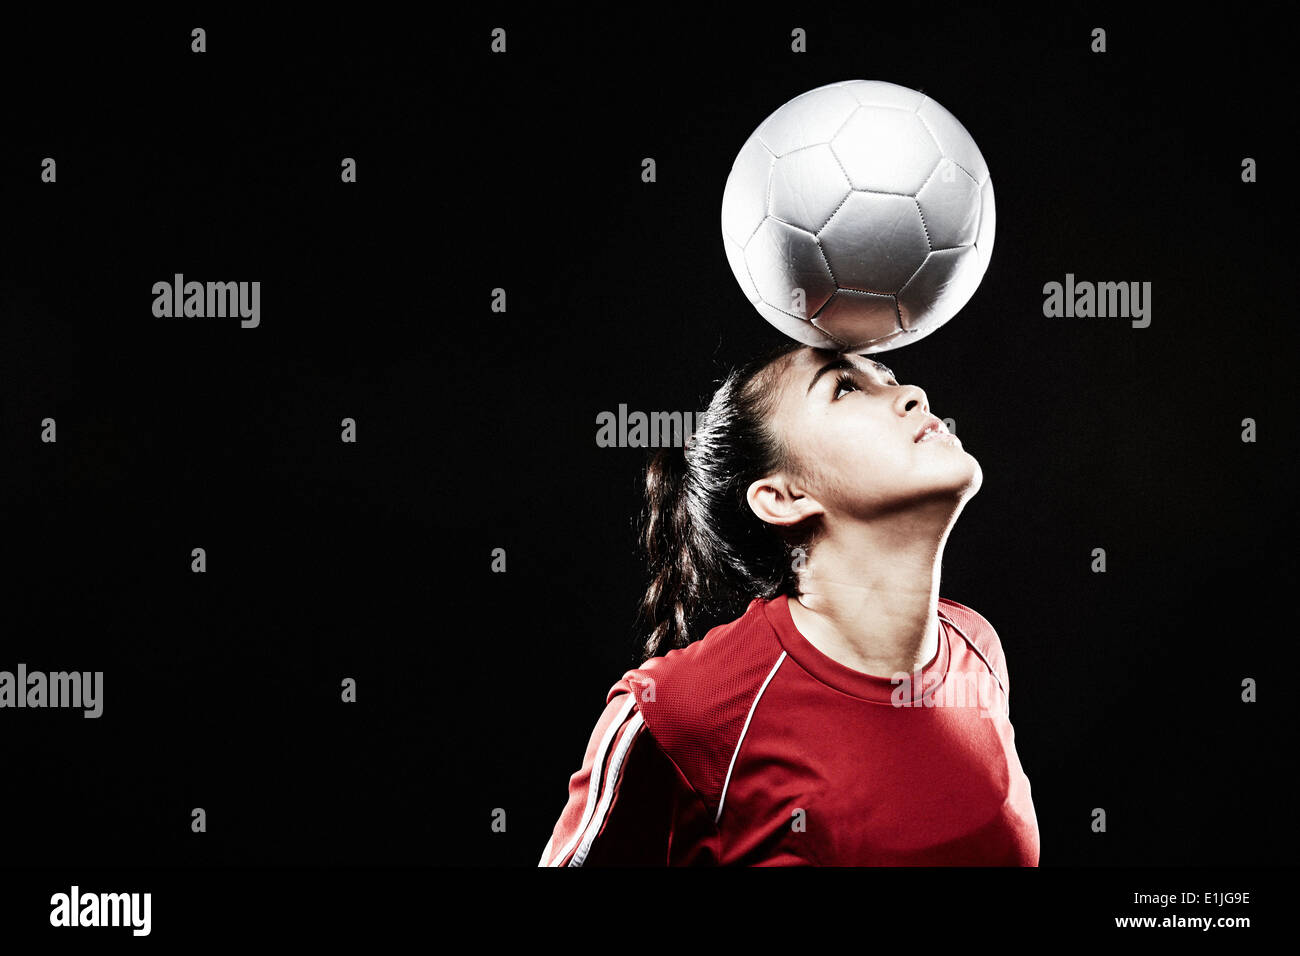 Young woman balancing football on forehead - Stock Image